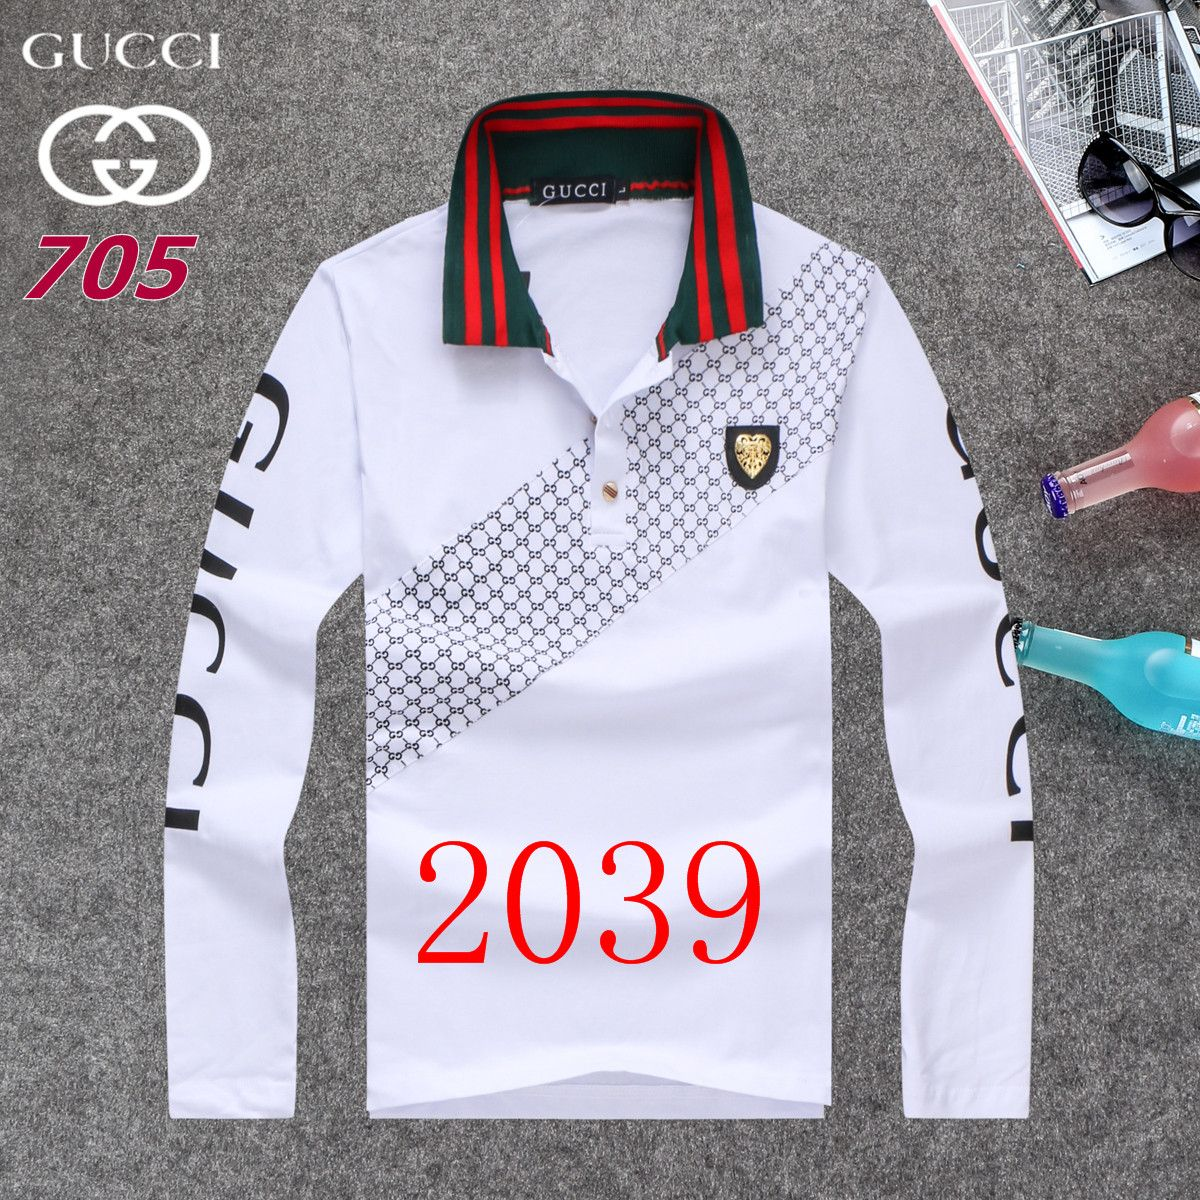 Gucci Long Sleeve Polo Shirts Men Gg86881 Pimp Stuff